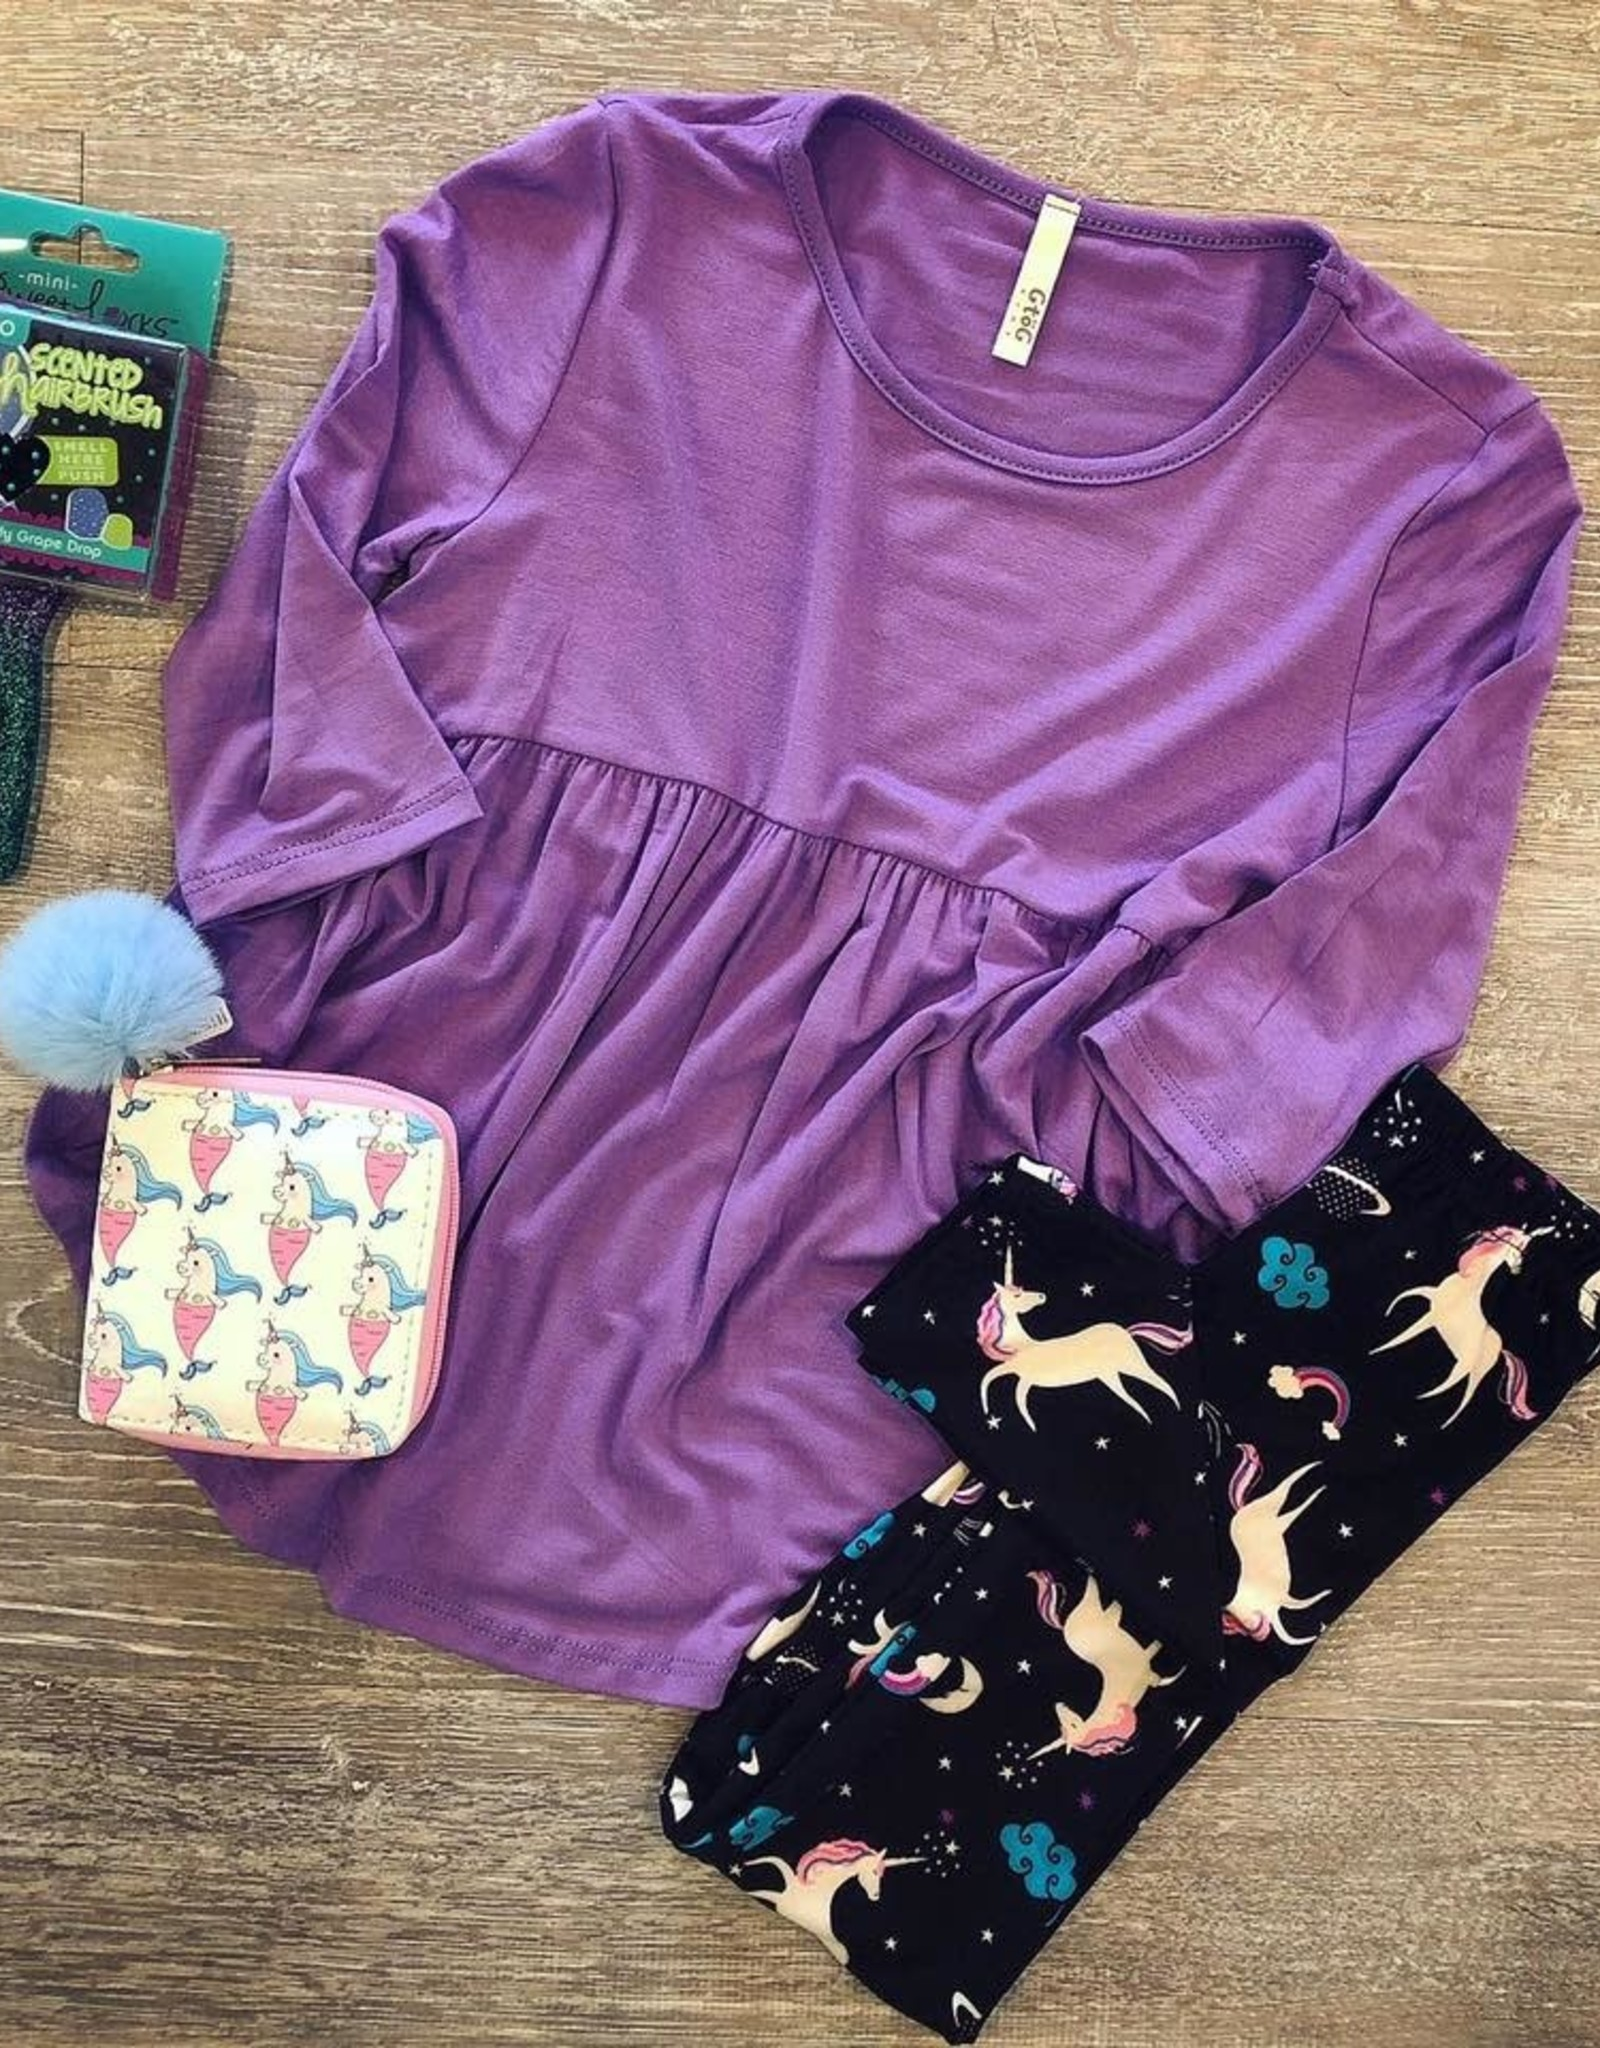 G to G baby doll tunic top 3/4 sleeves in lavender